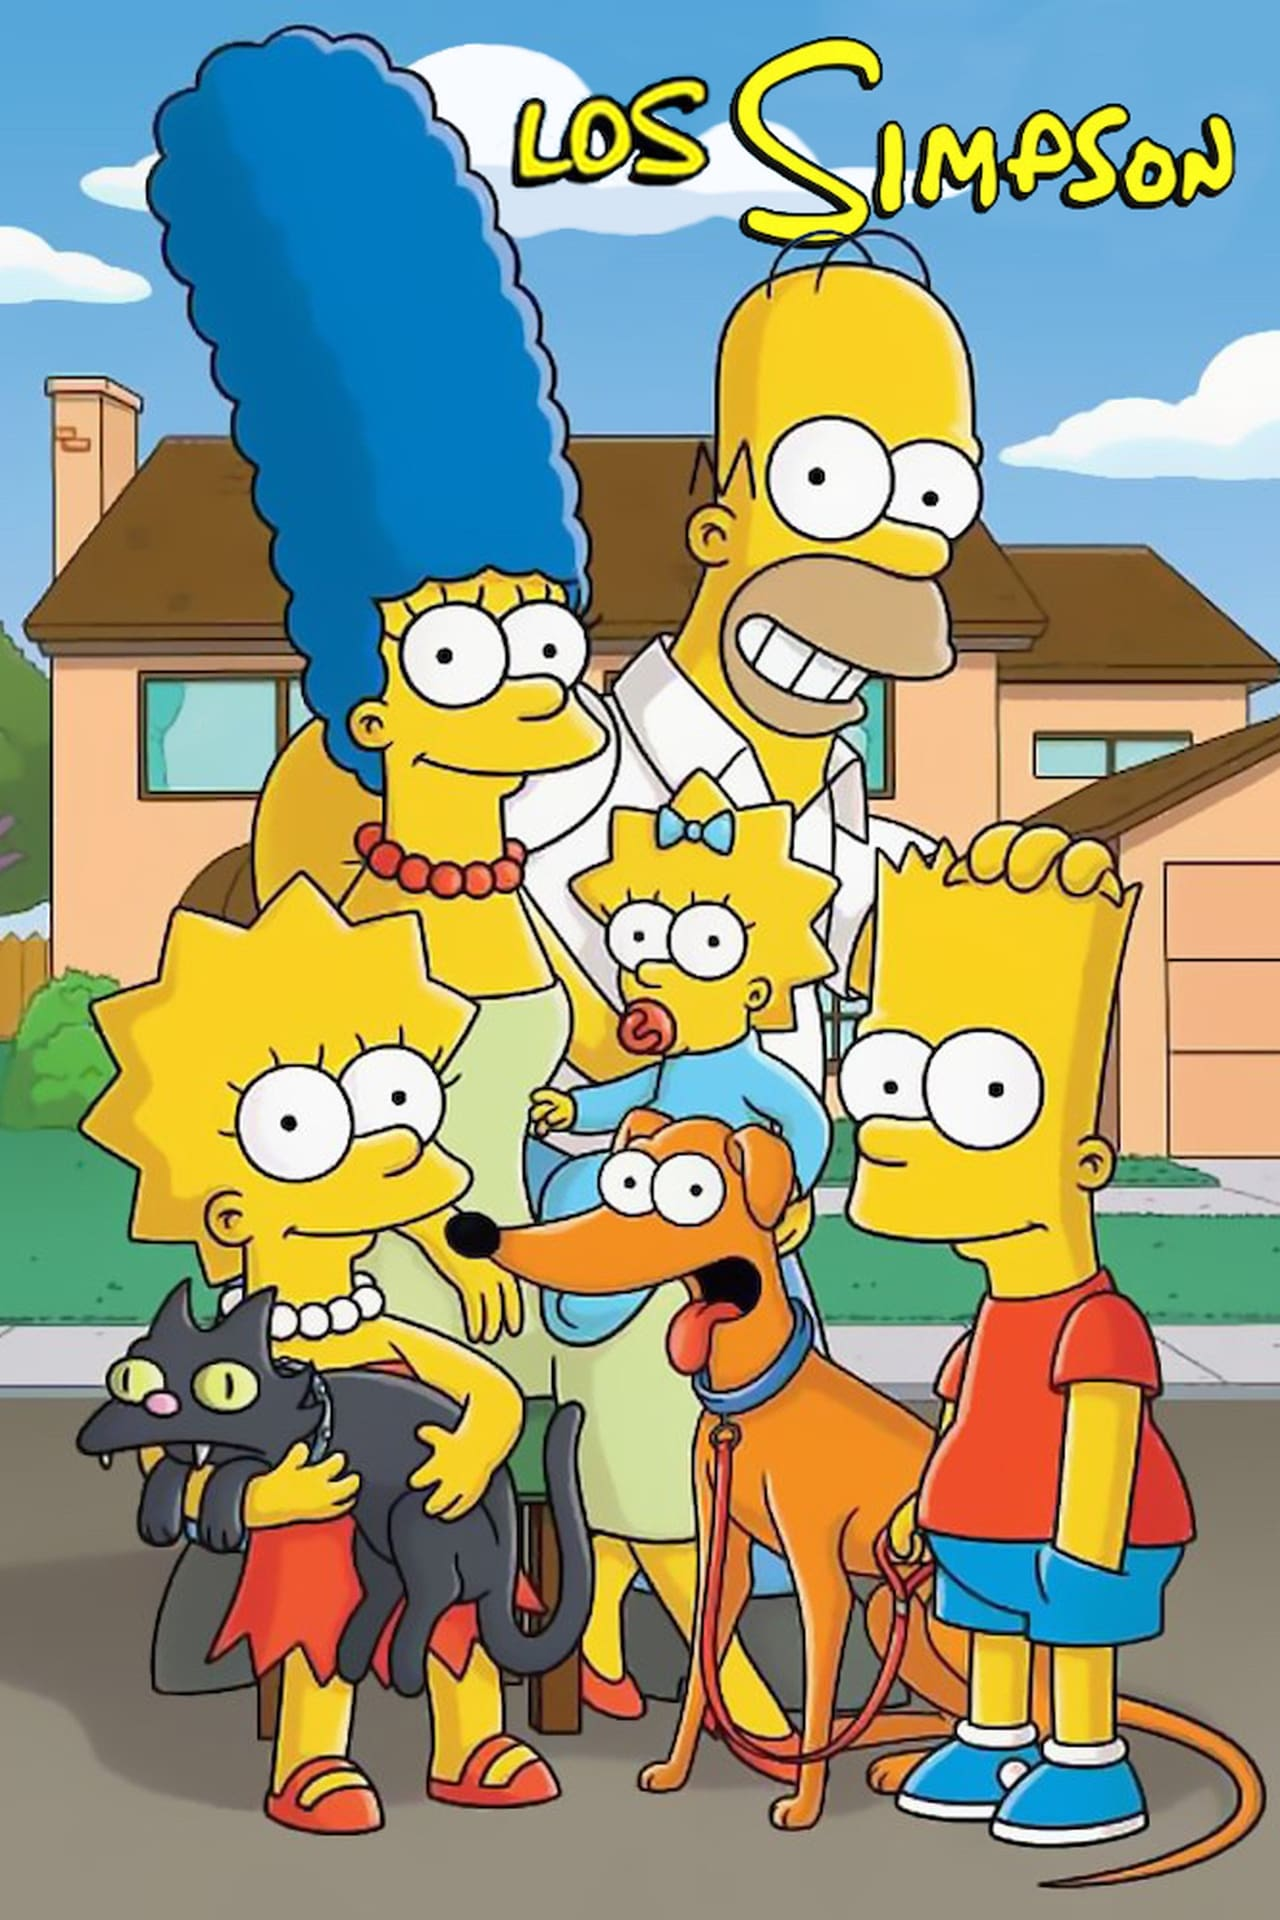 Los Simpson - Season 12 Episode 5 : Homer contra la dignidad